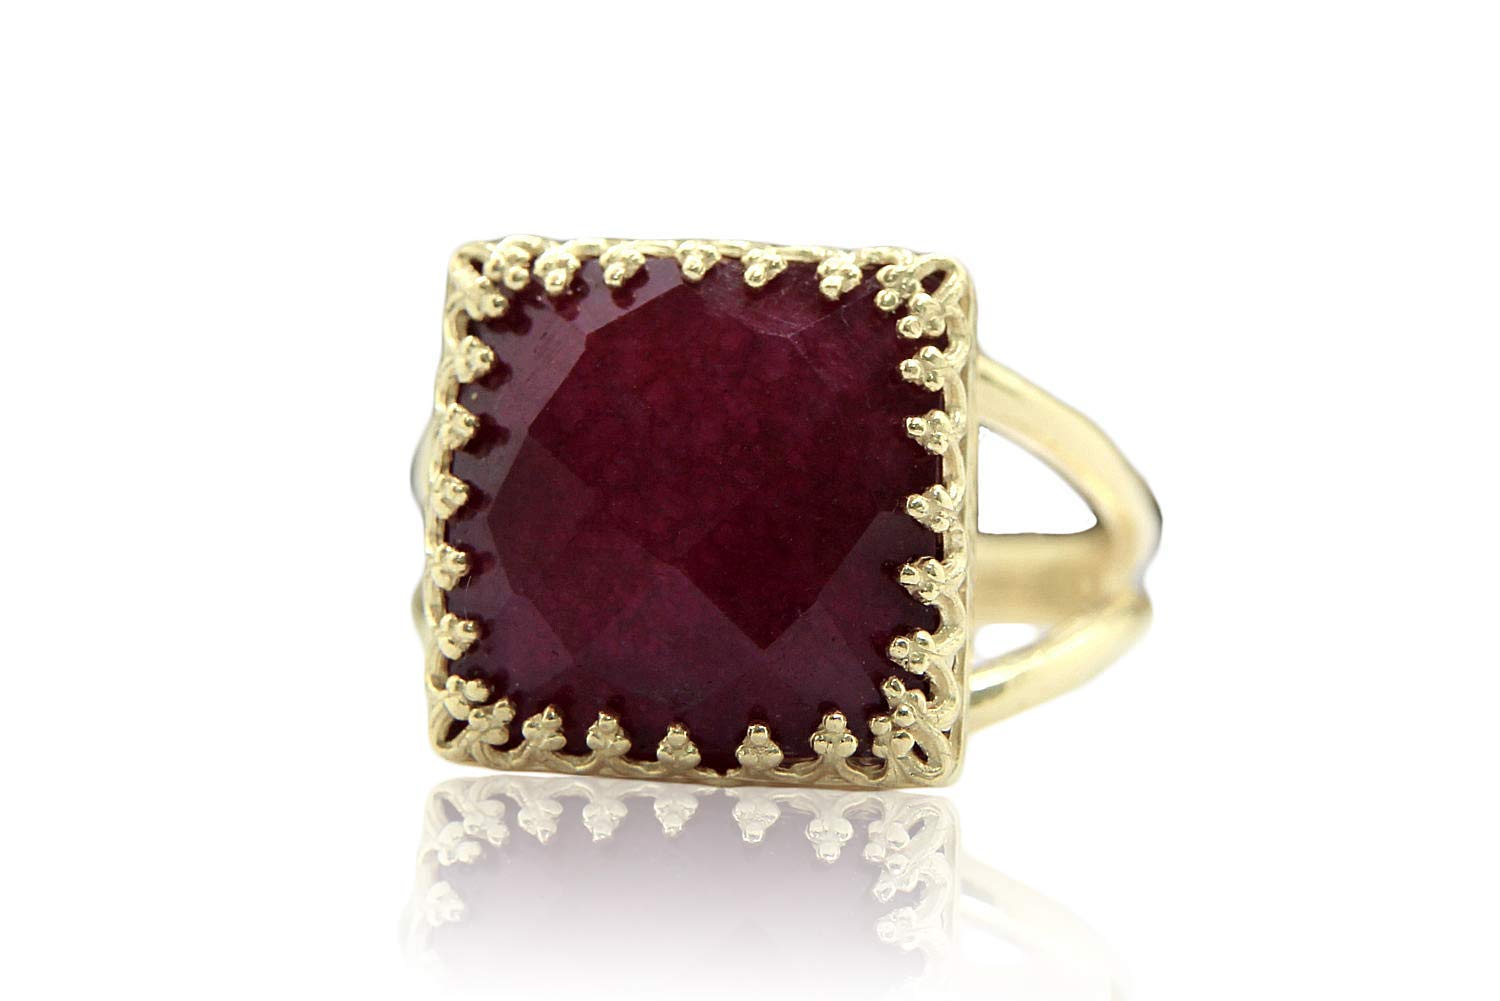 Anemone Jewelry 10CT Ruby Ring - Elegant Gold Ring Jewelry for Everyday Use - Stylish Unique Ring for Women - Handmade